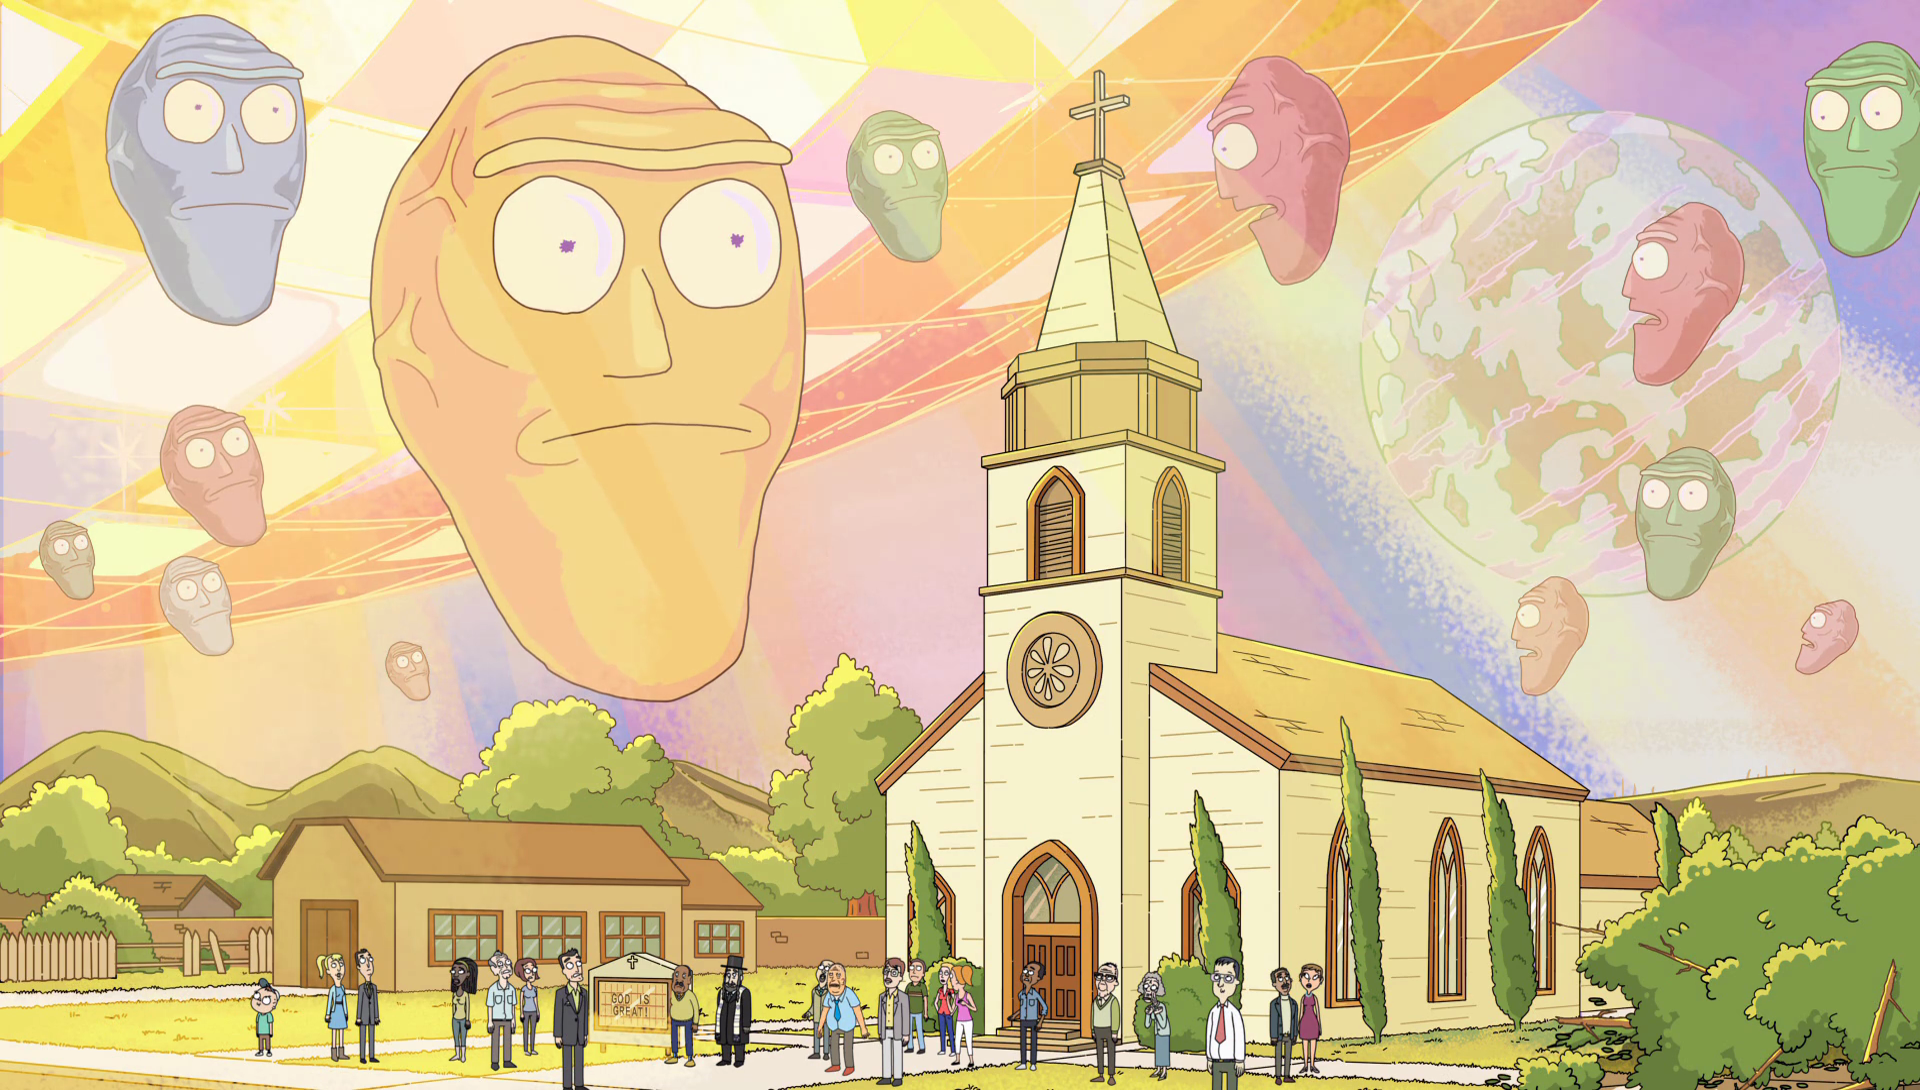 cromulons invade earth in the rick and morty season 2 episode get schwiftypngrectu003d75014521090u0026fmu003dpngu0026wu003d1200